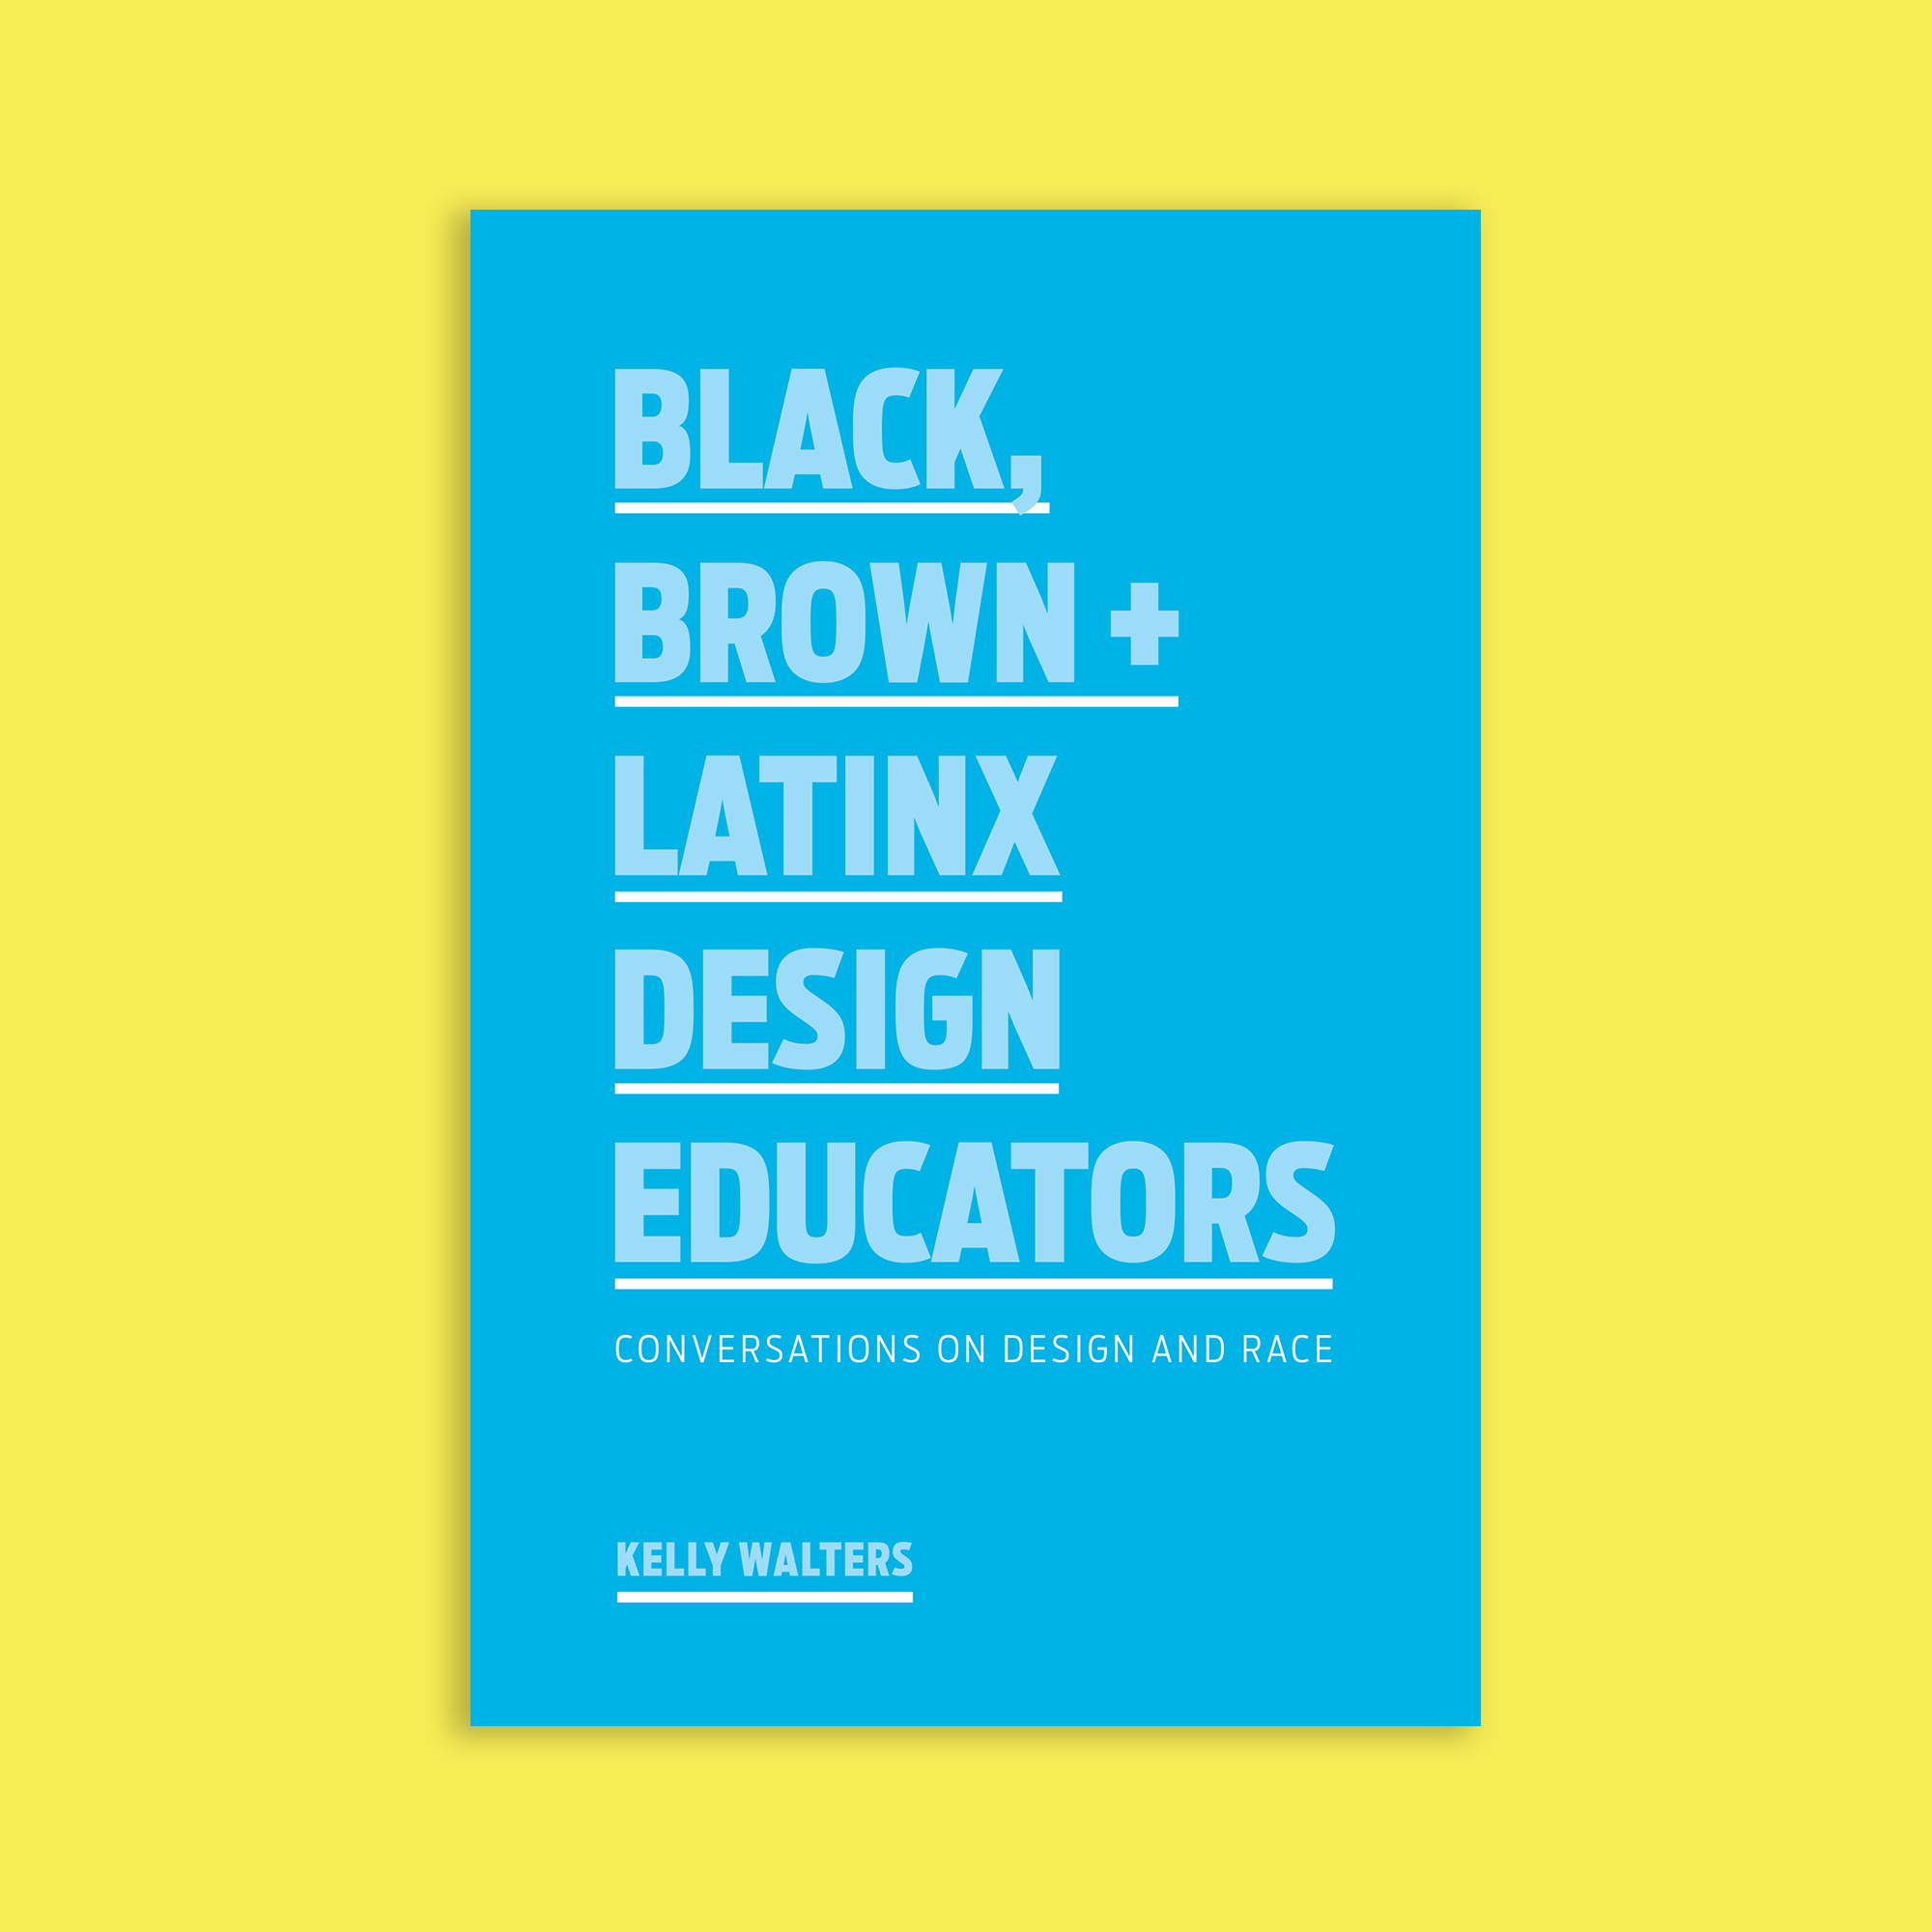 Black, Brown + Latinx Design Educators Book Cover on a yellow background